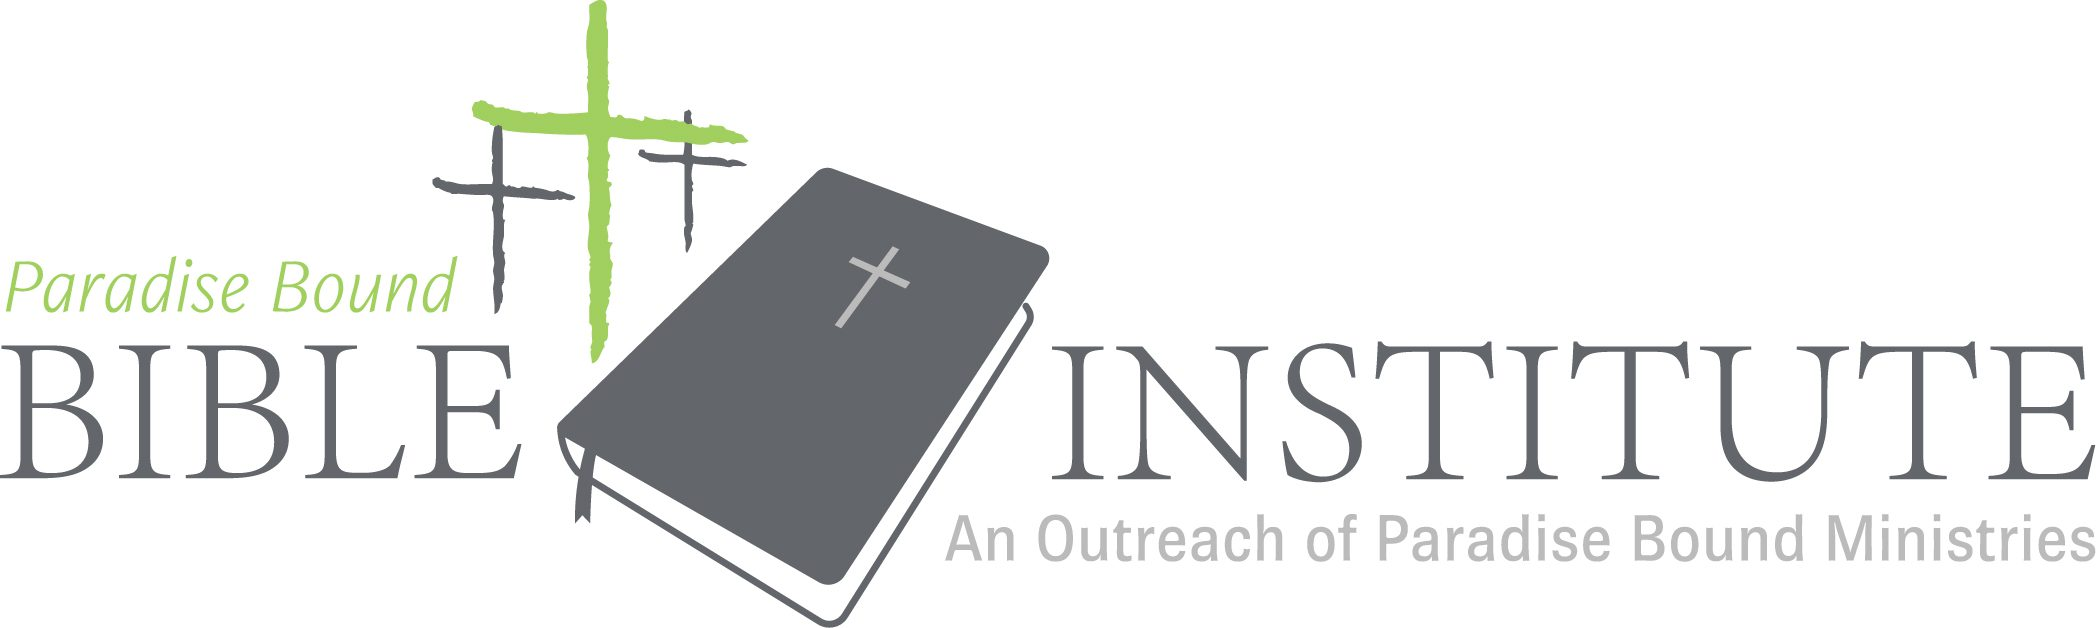 PB Bible Institute Logo